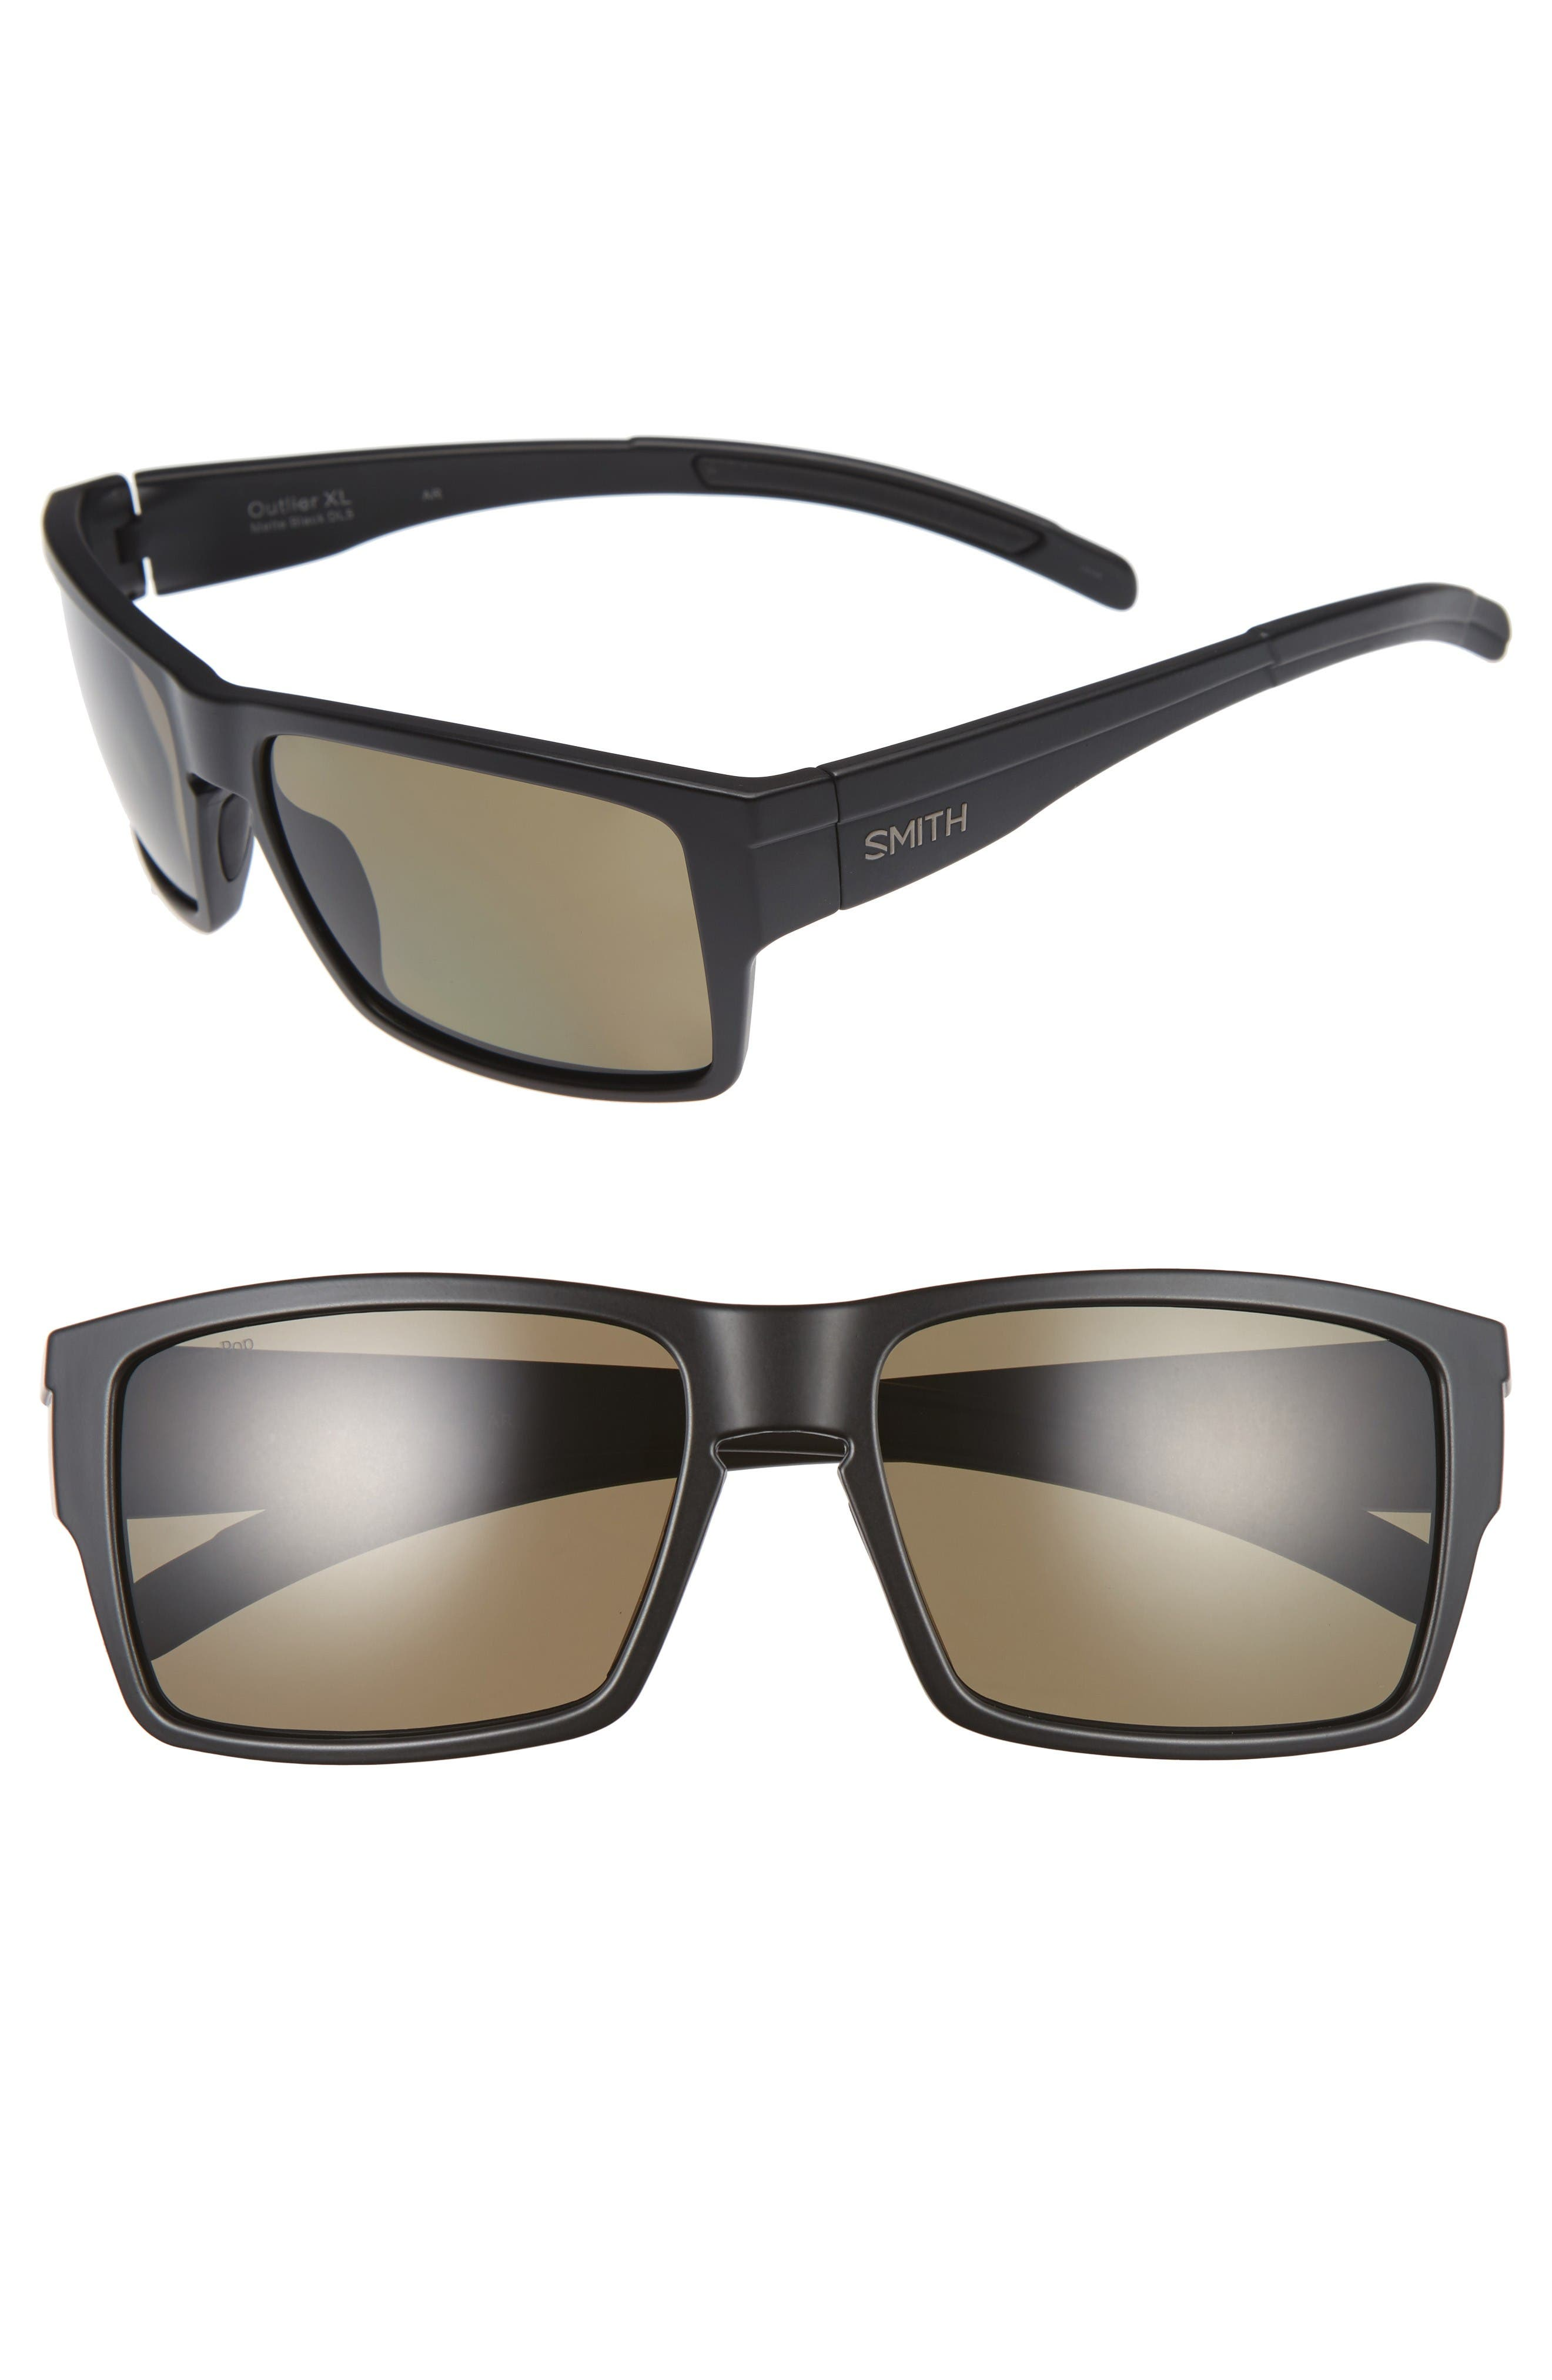 SMITH Outlier XL 58mm Polarized Sunglasses